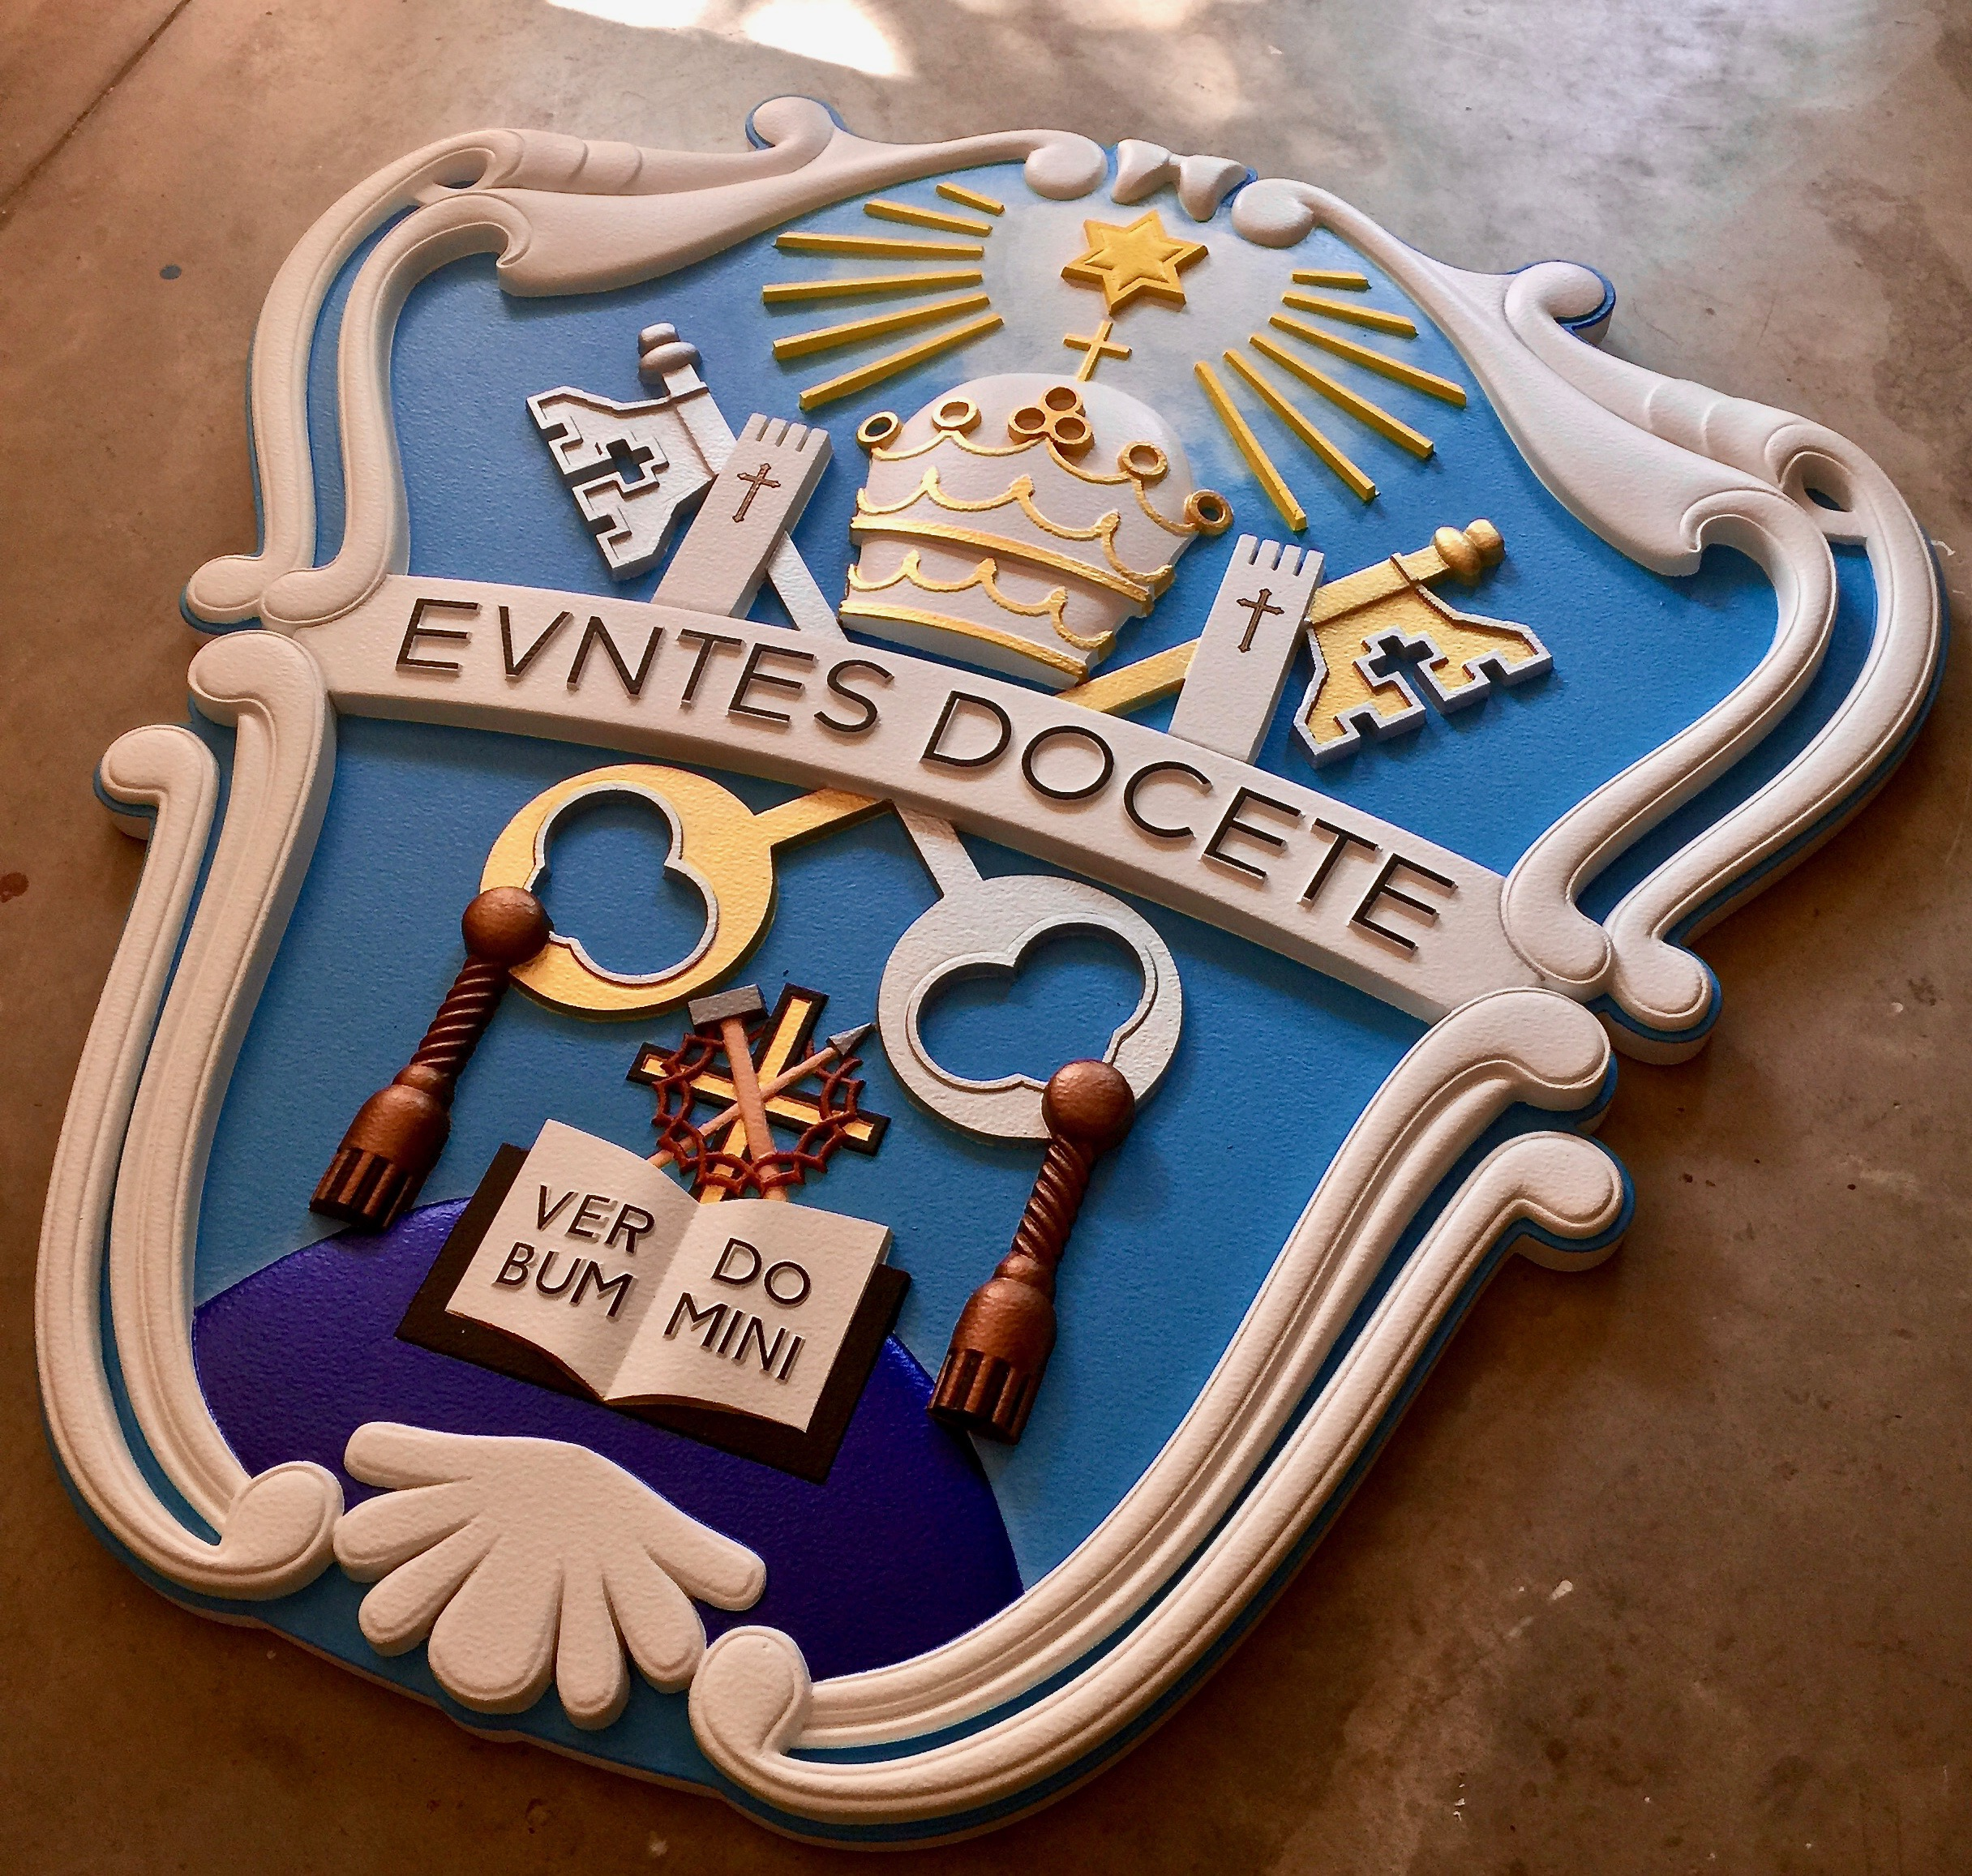 We made this crest for Villa Victoria Academy, an all girls Catholic school in Ewing NJ. This 4ft x 4ft carved plaque will most definately make a positive impression on visitors and students alike.